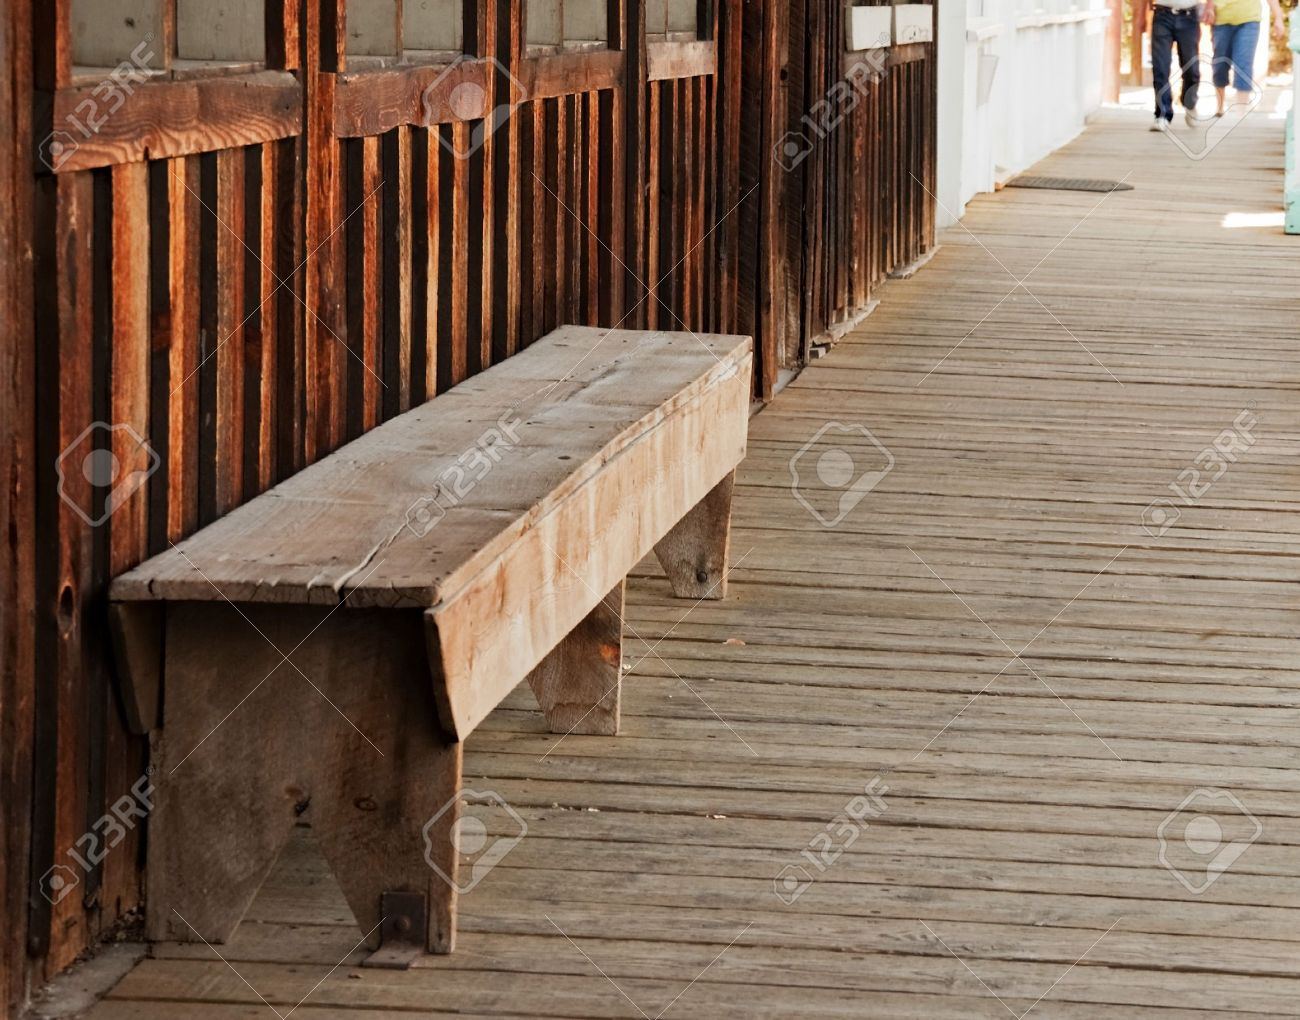 A Wood Bench Seat Is Located On A Old Wild West Themed Wooden